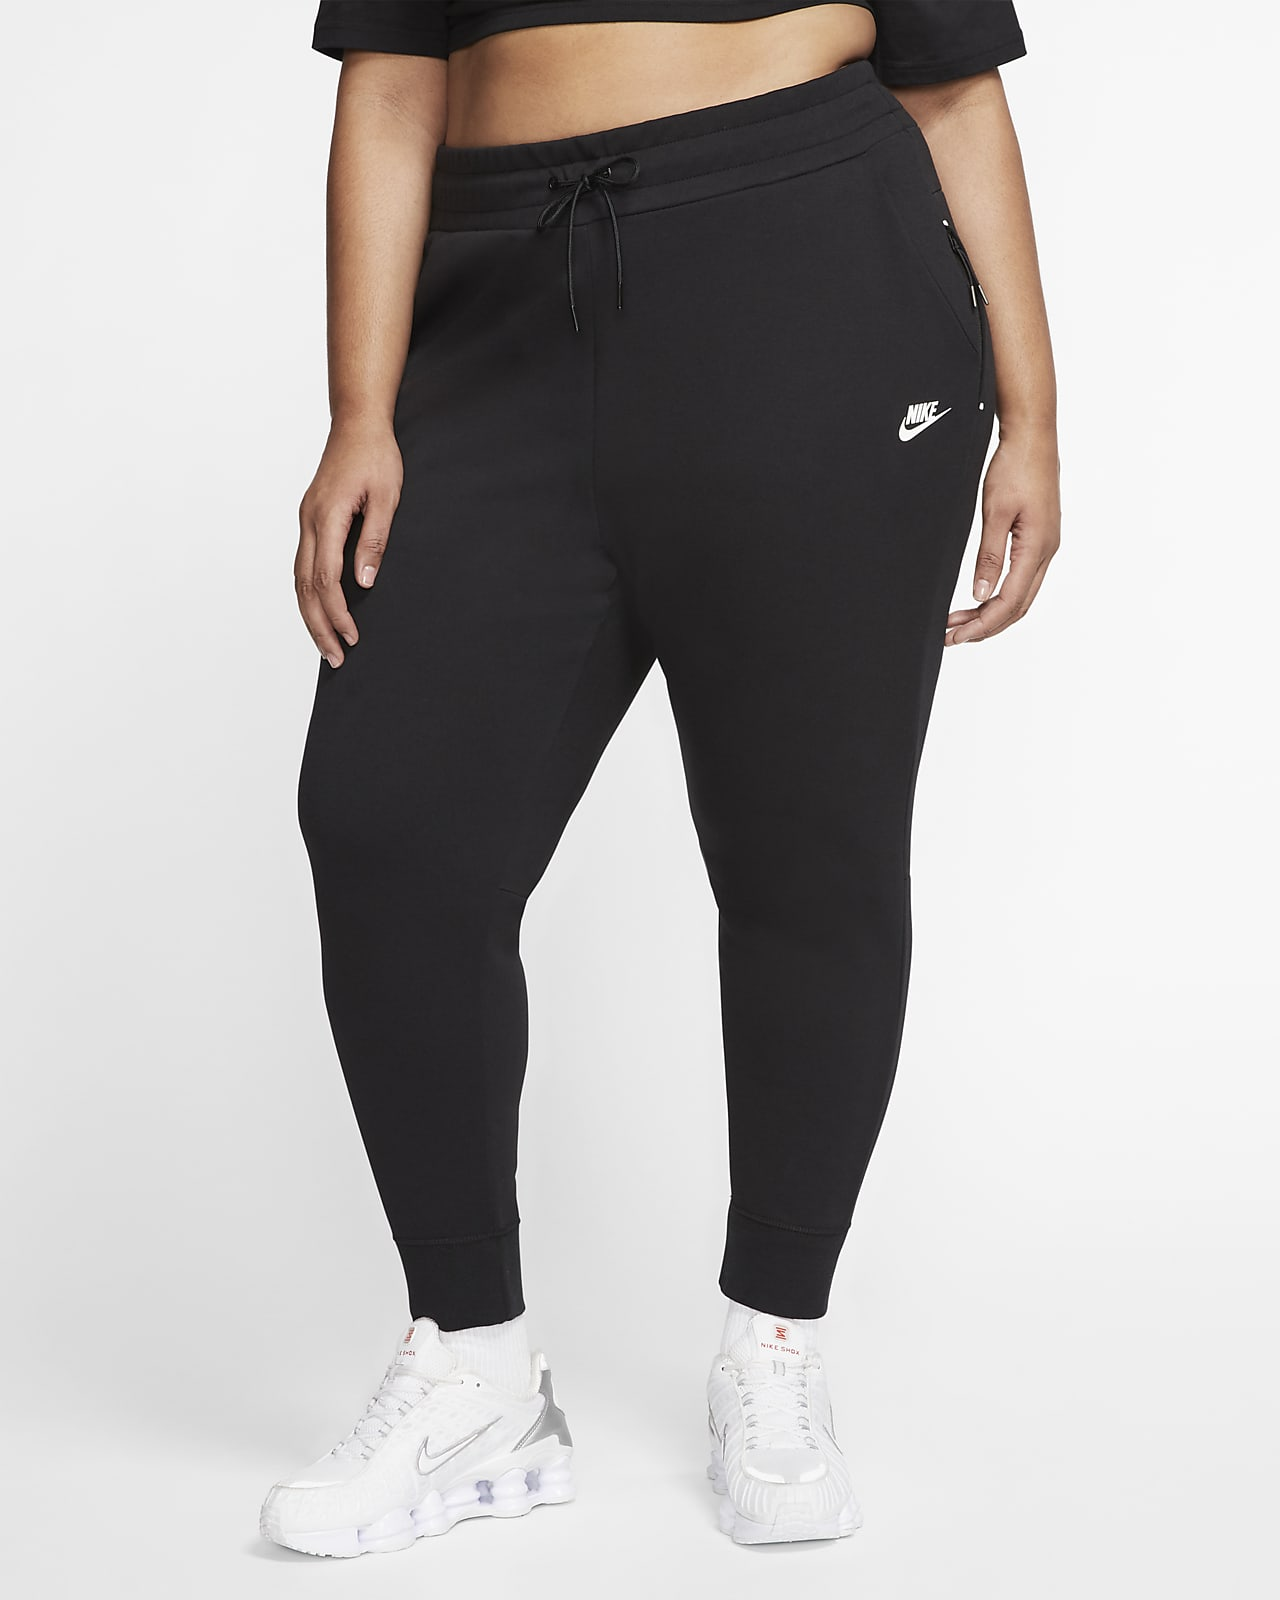 Nike Sportswear Tech Fleece Trousers Women's (Plus Size)